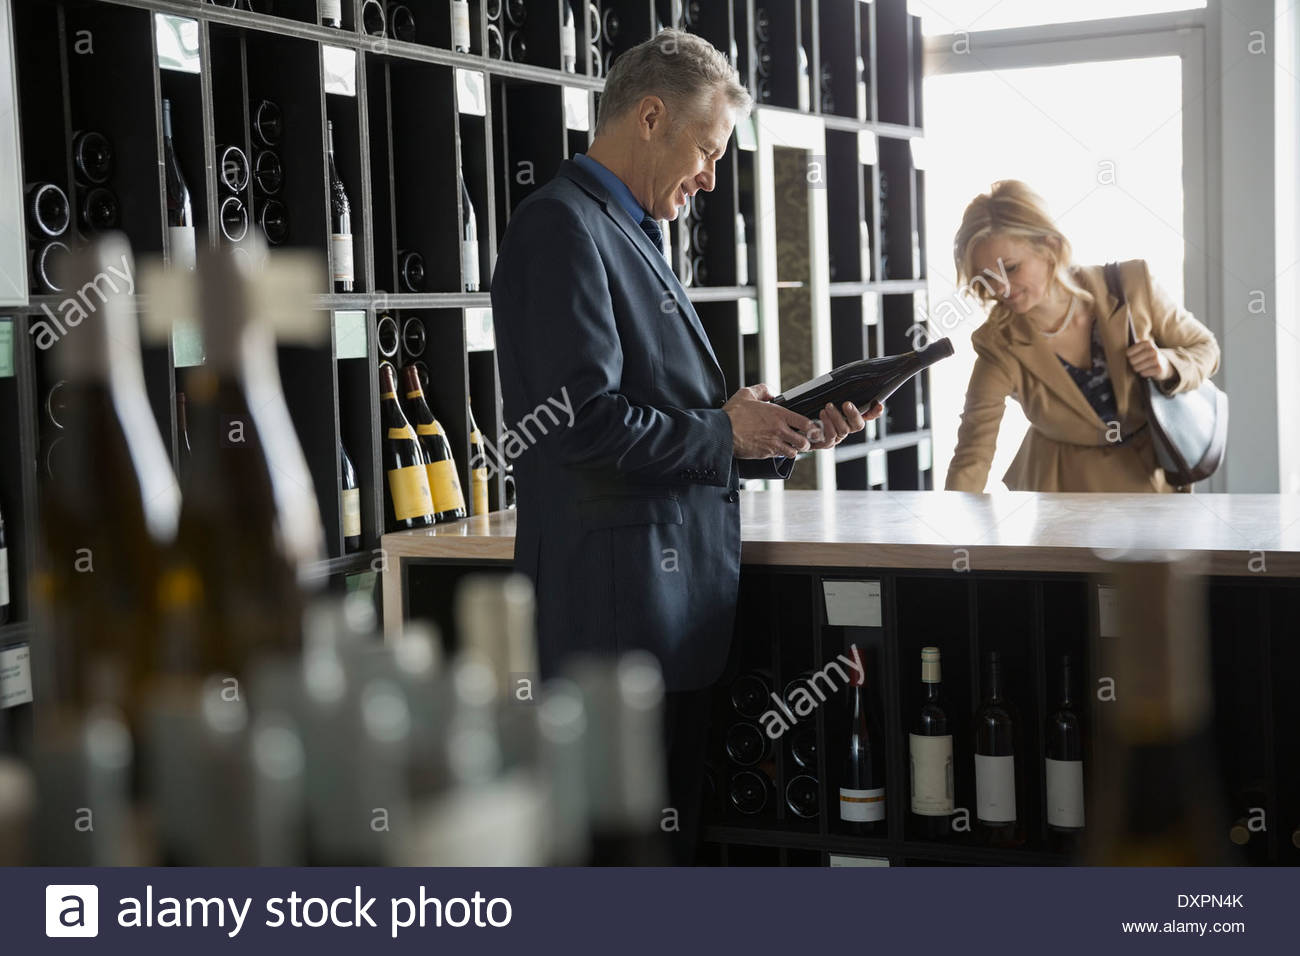 Man shopping in wine store Stock Photo